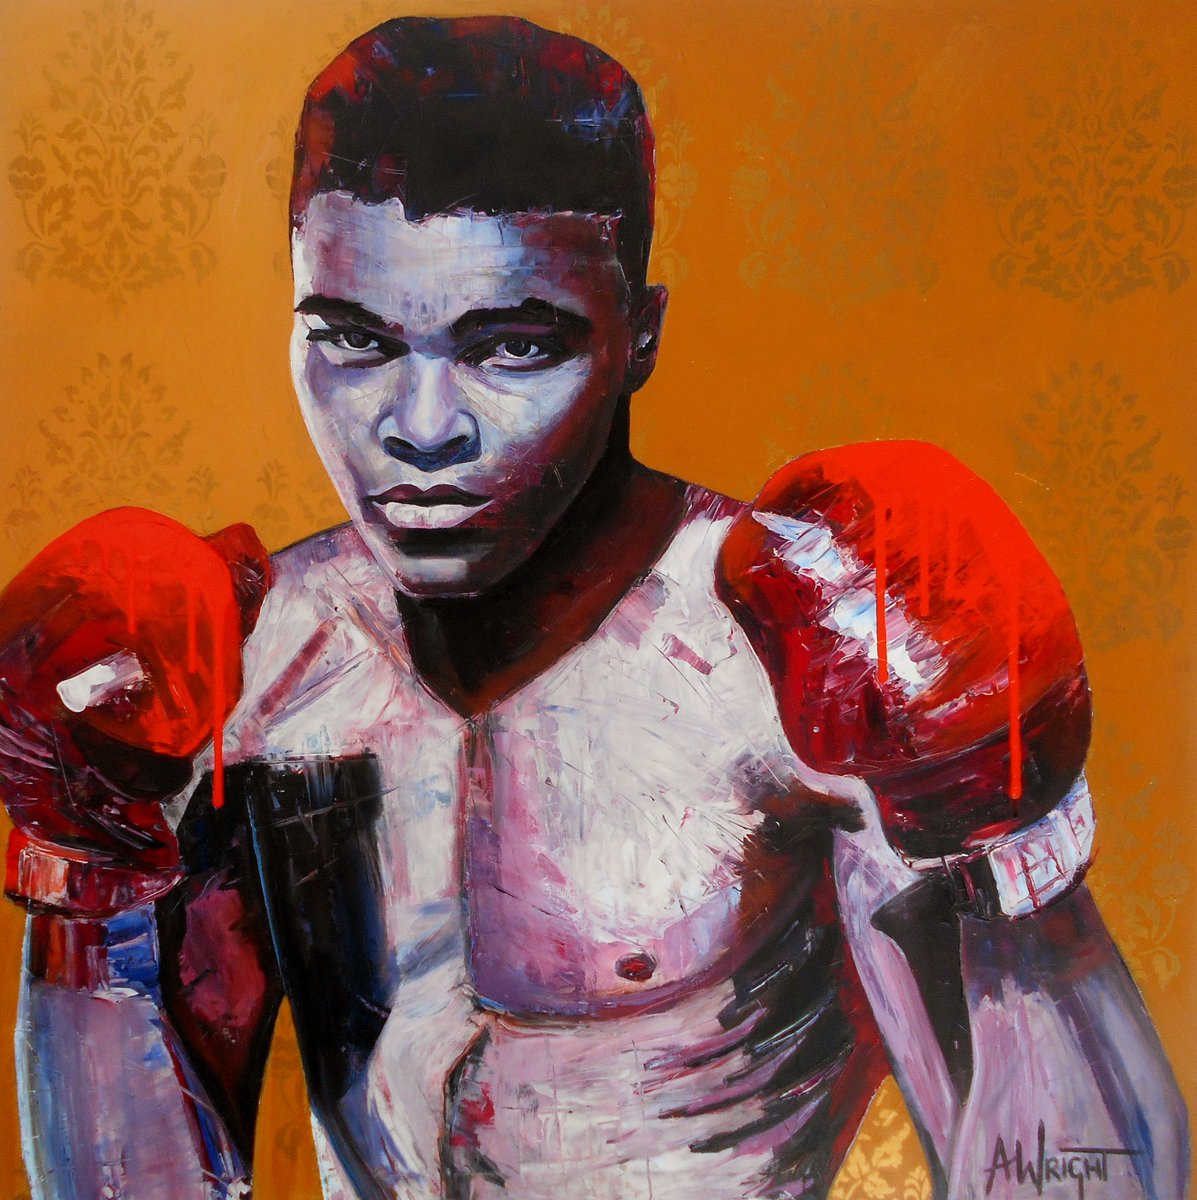 May he float like a butterfly and sting like a bee forever more. #RIPMuhammedAli. Painting by Angie Wright. https://t.co/a5OHeK5Sr3